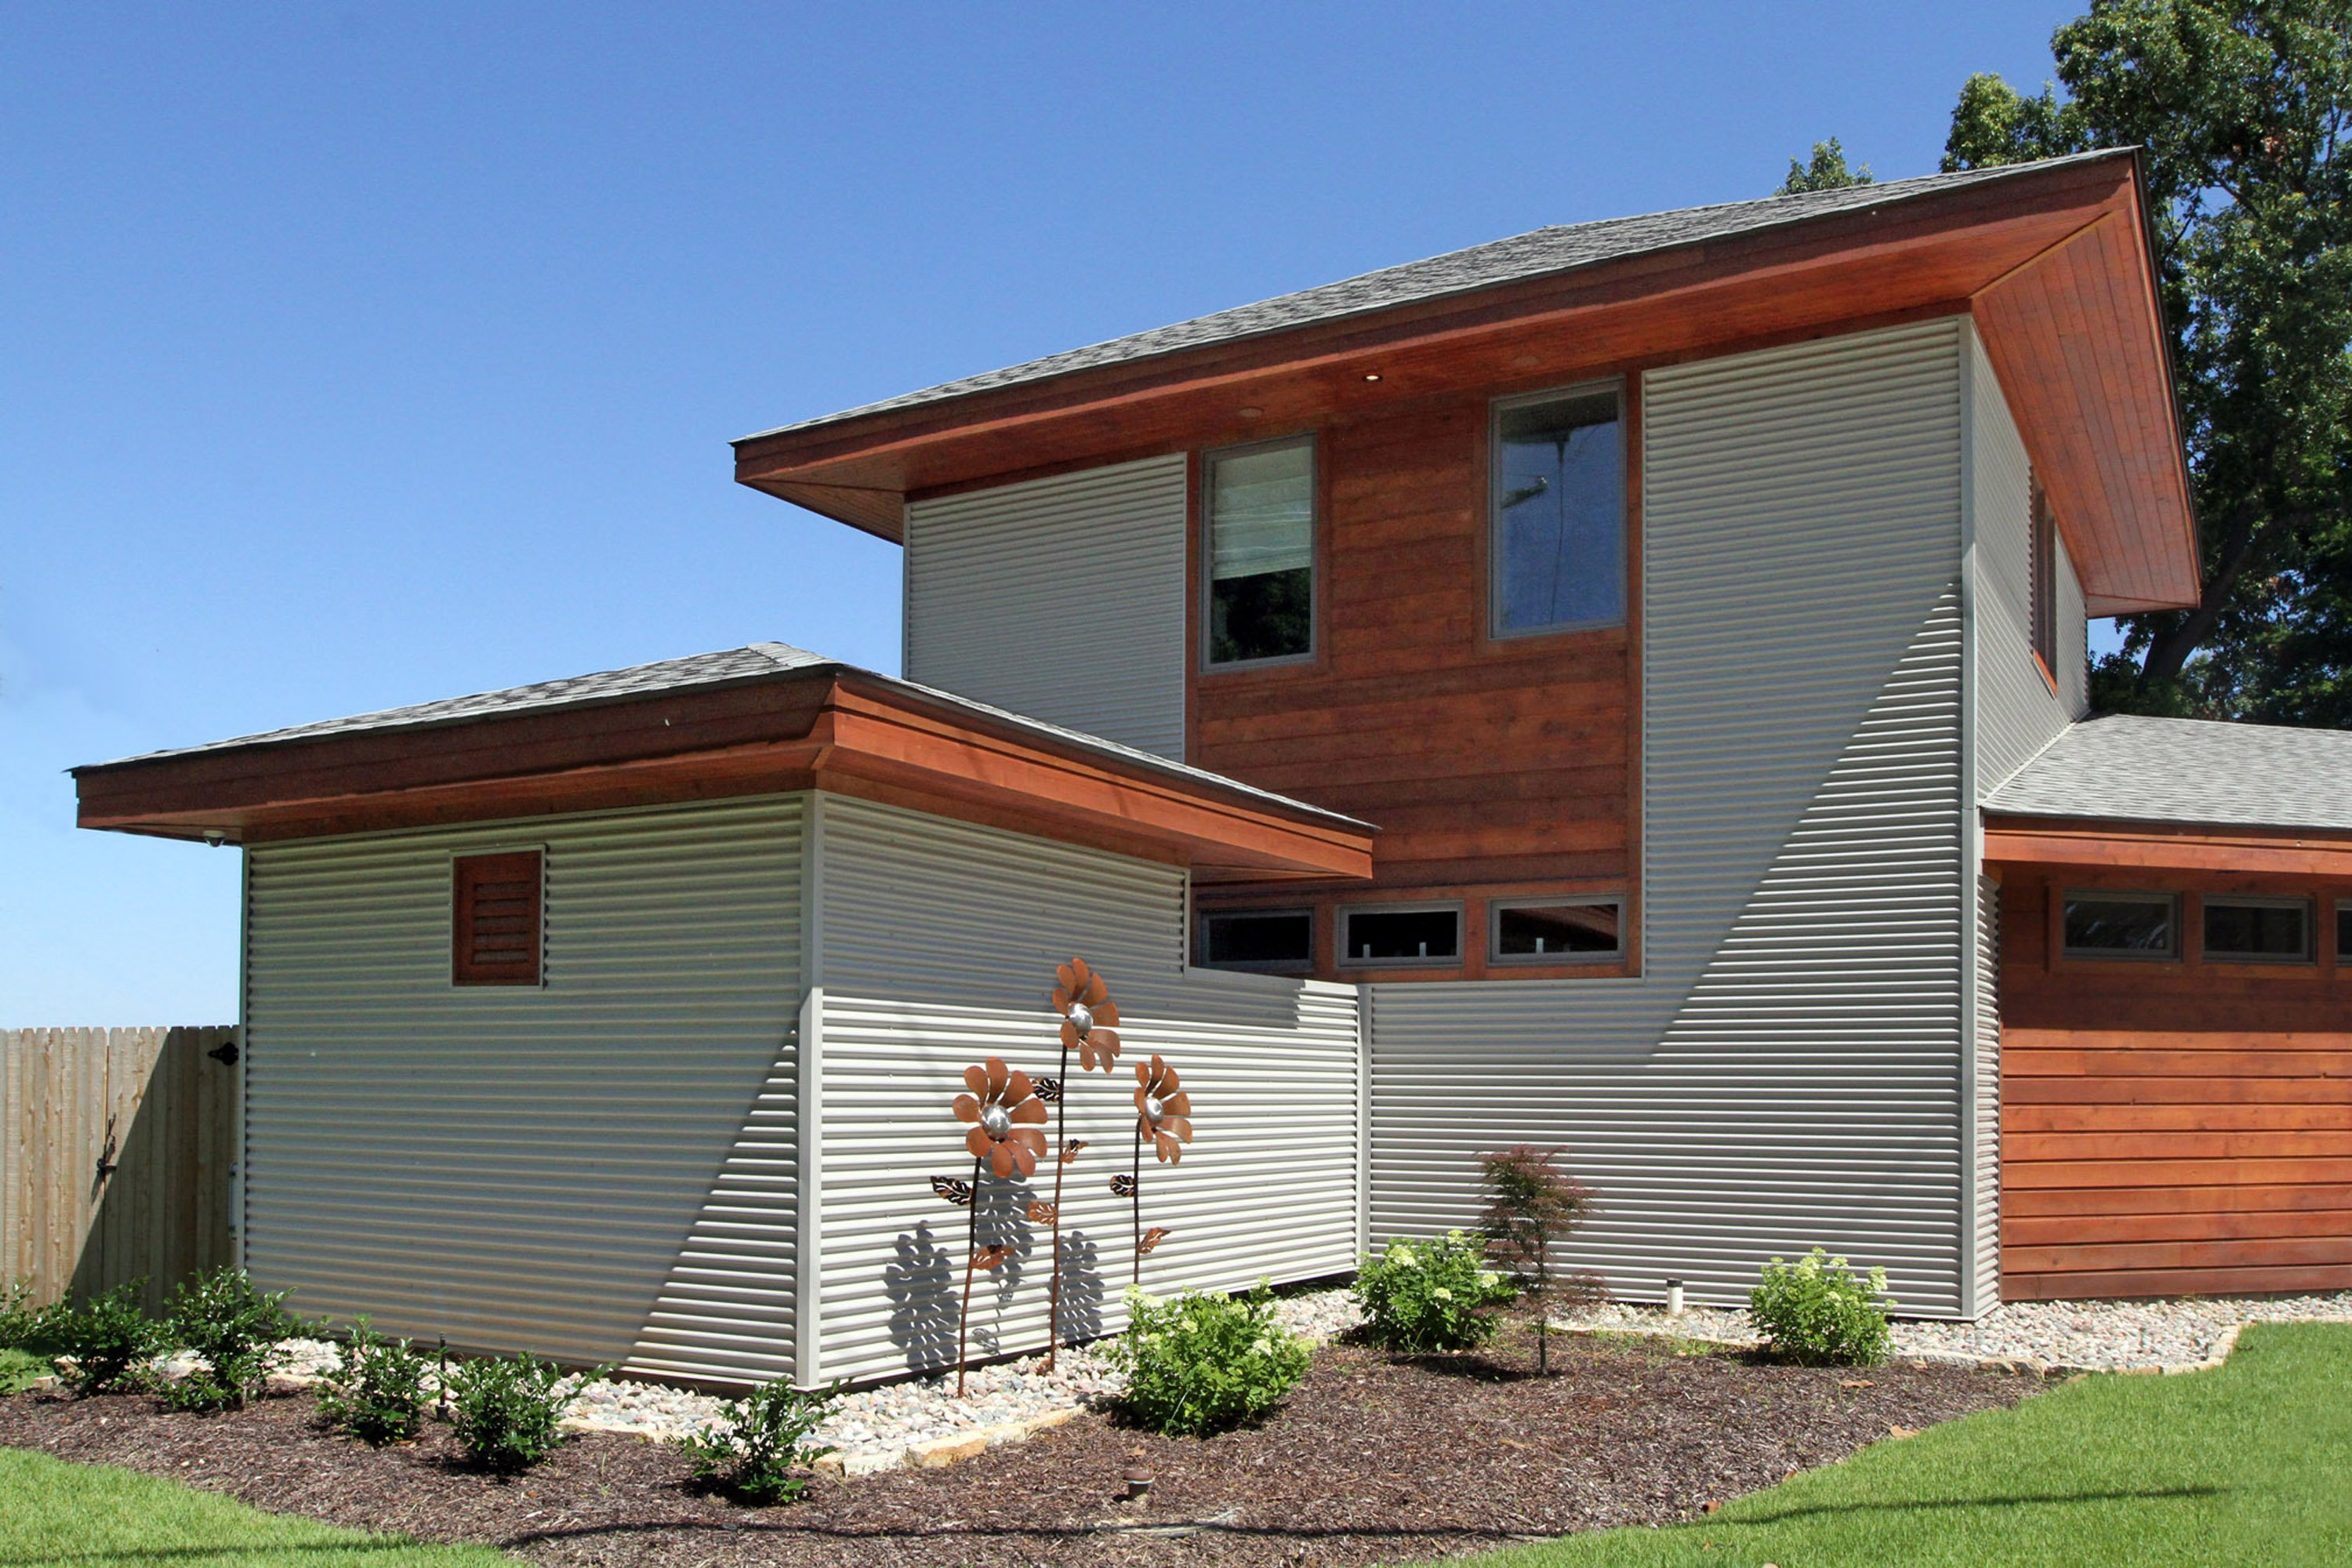 Metal Wall Panels: A Versatile Option for Residential Home Design